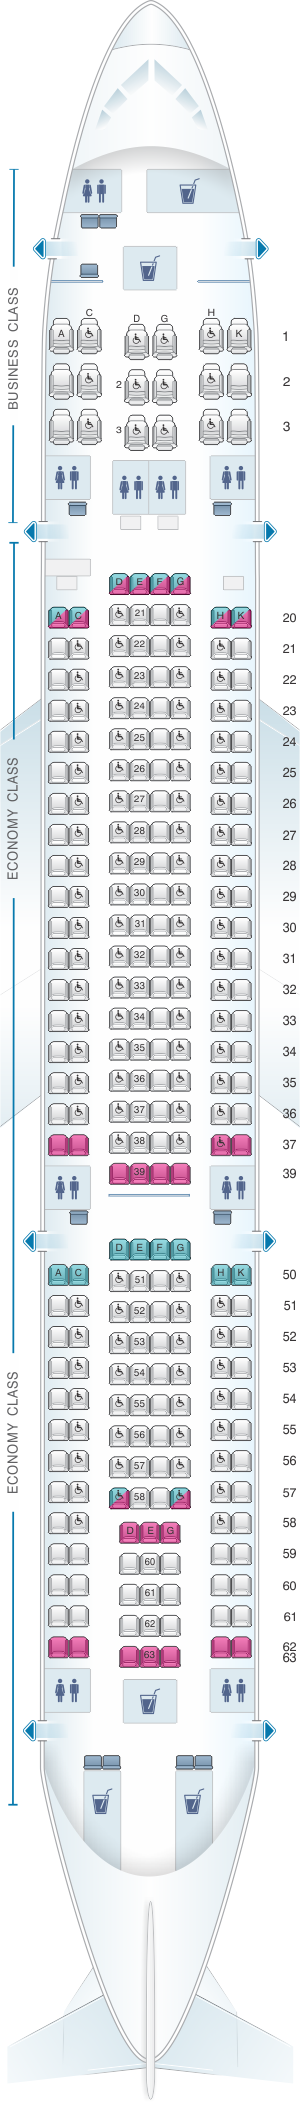 Seat map for SriLankan Airlines Airbus A330-200 Config. 3